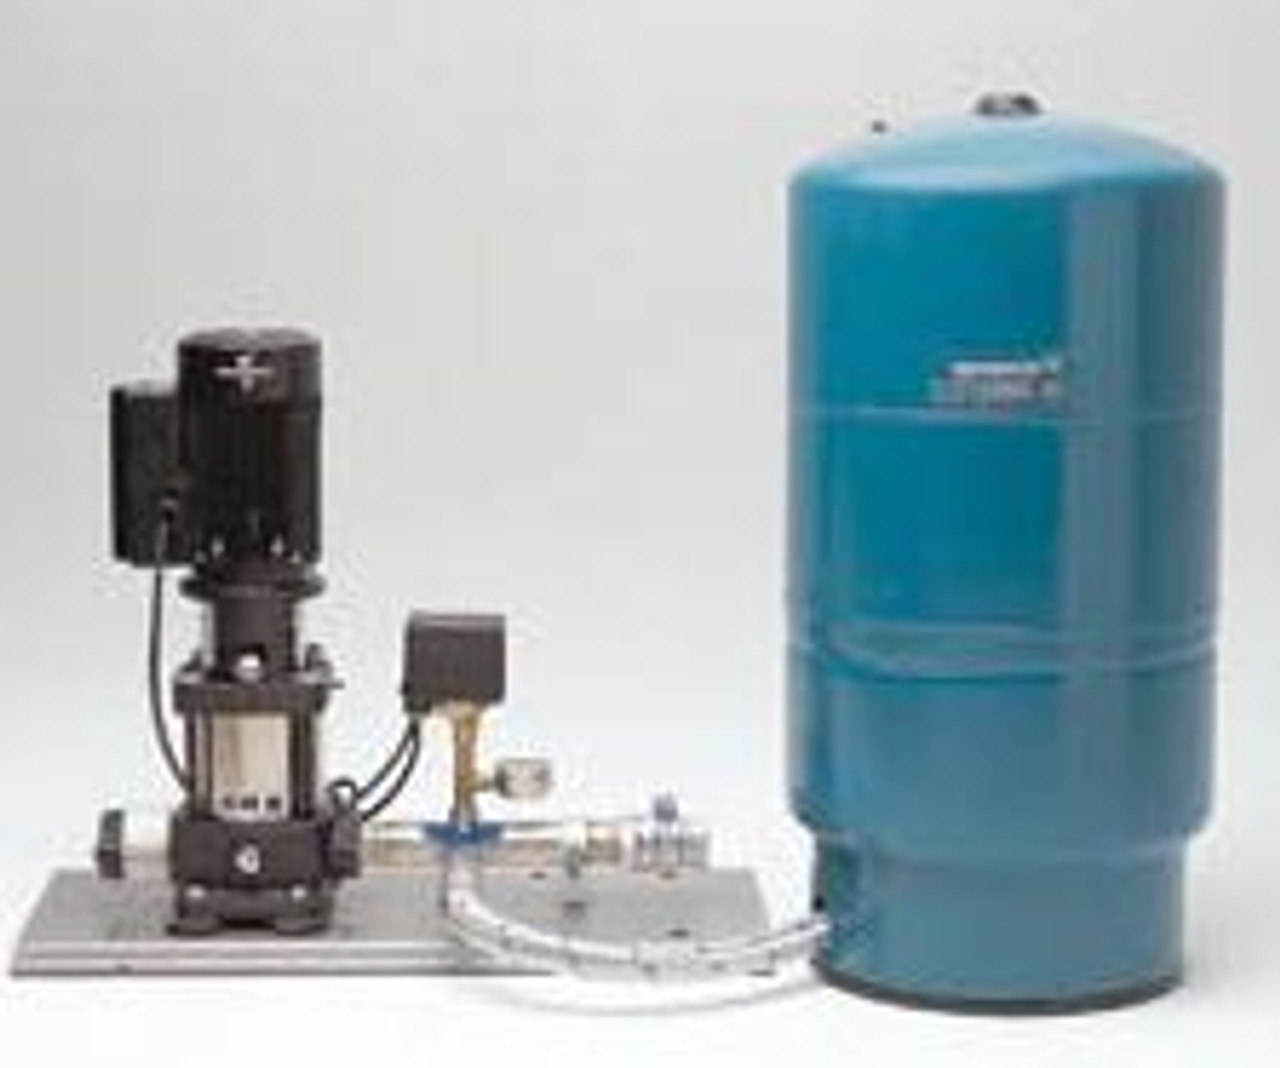 Grundfos CR3-21 Vertical Multistage Pump with Pressure Tank and Pressure Switch on a stainless steel base